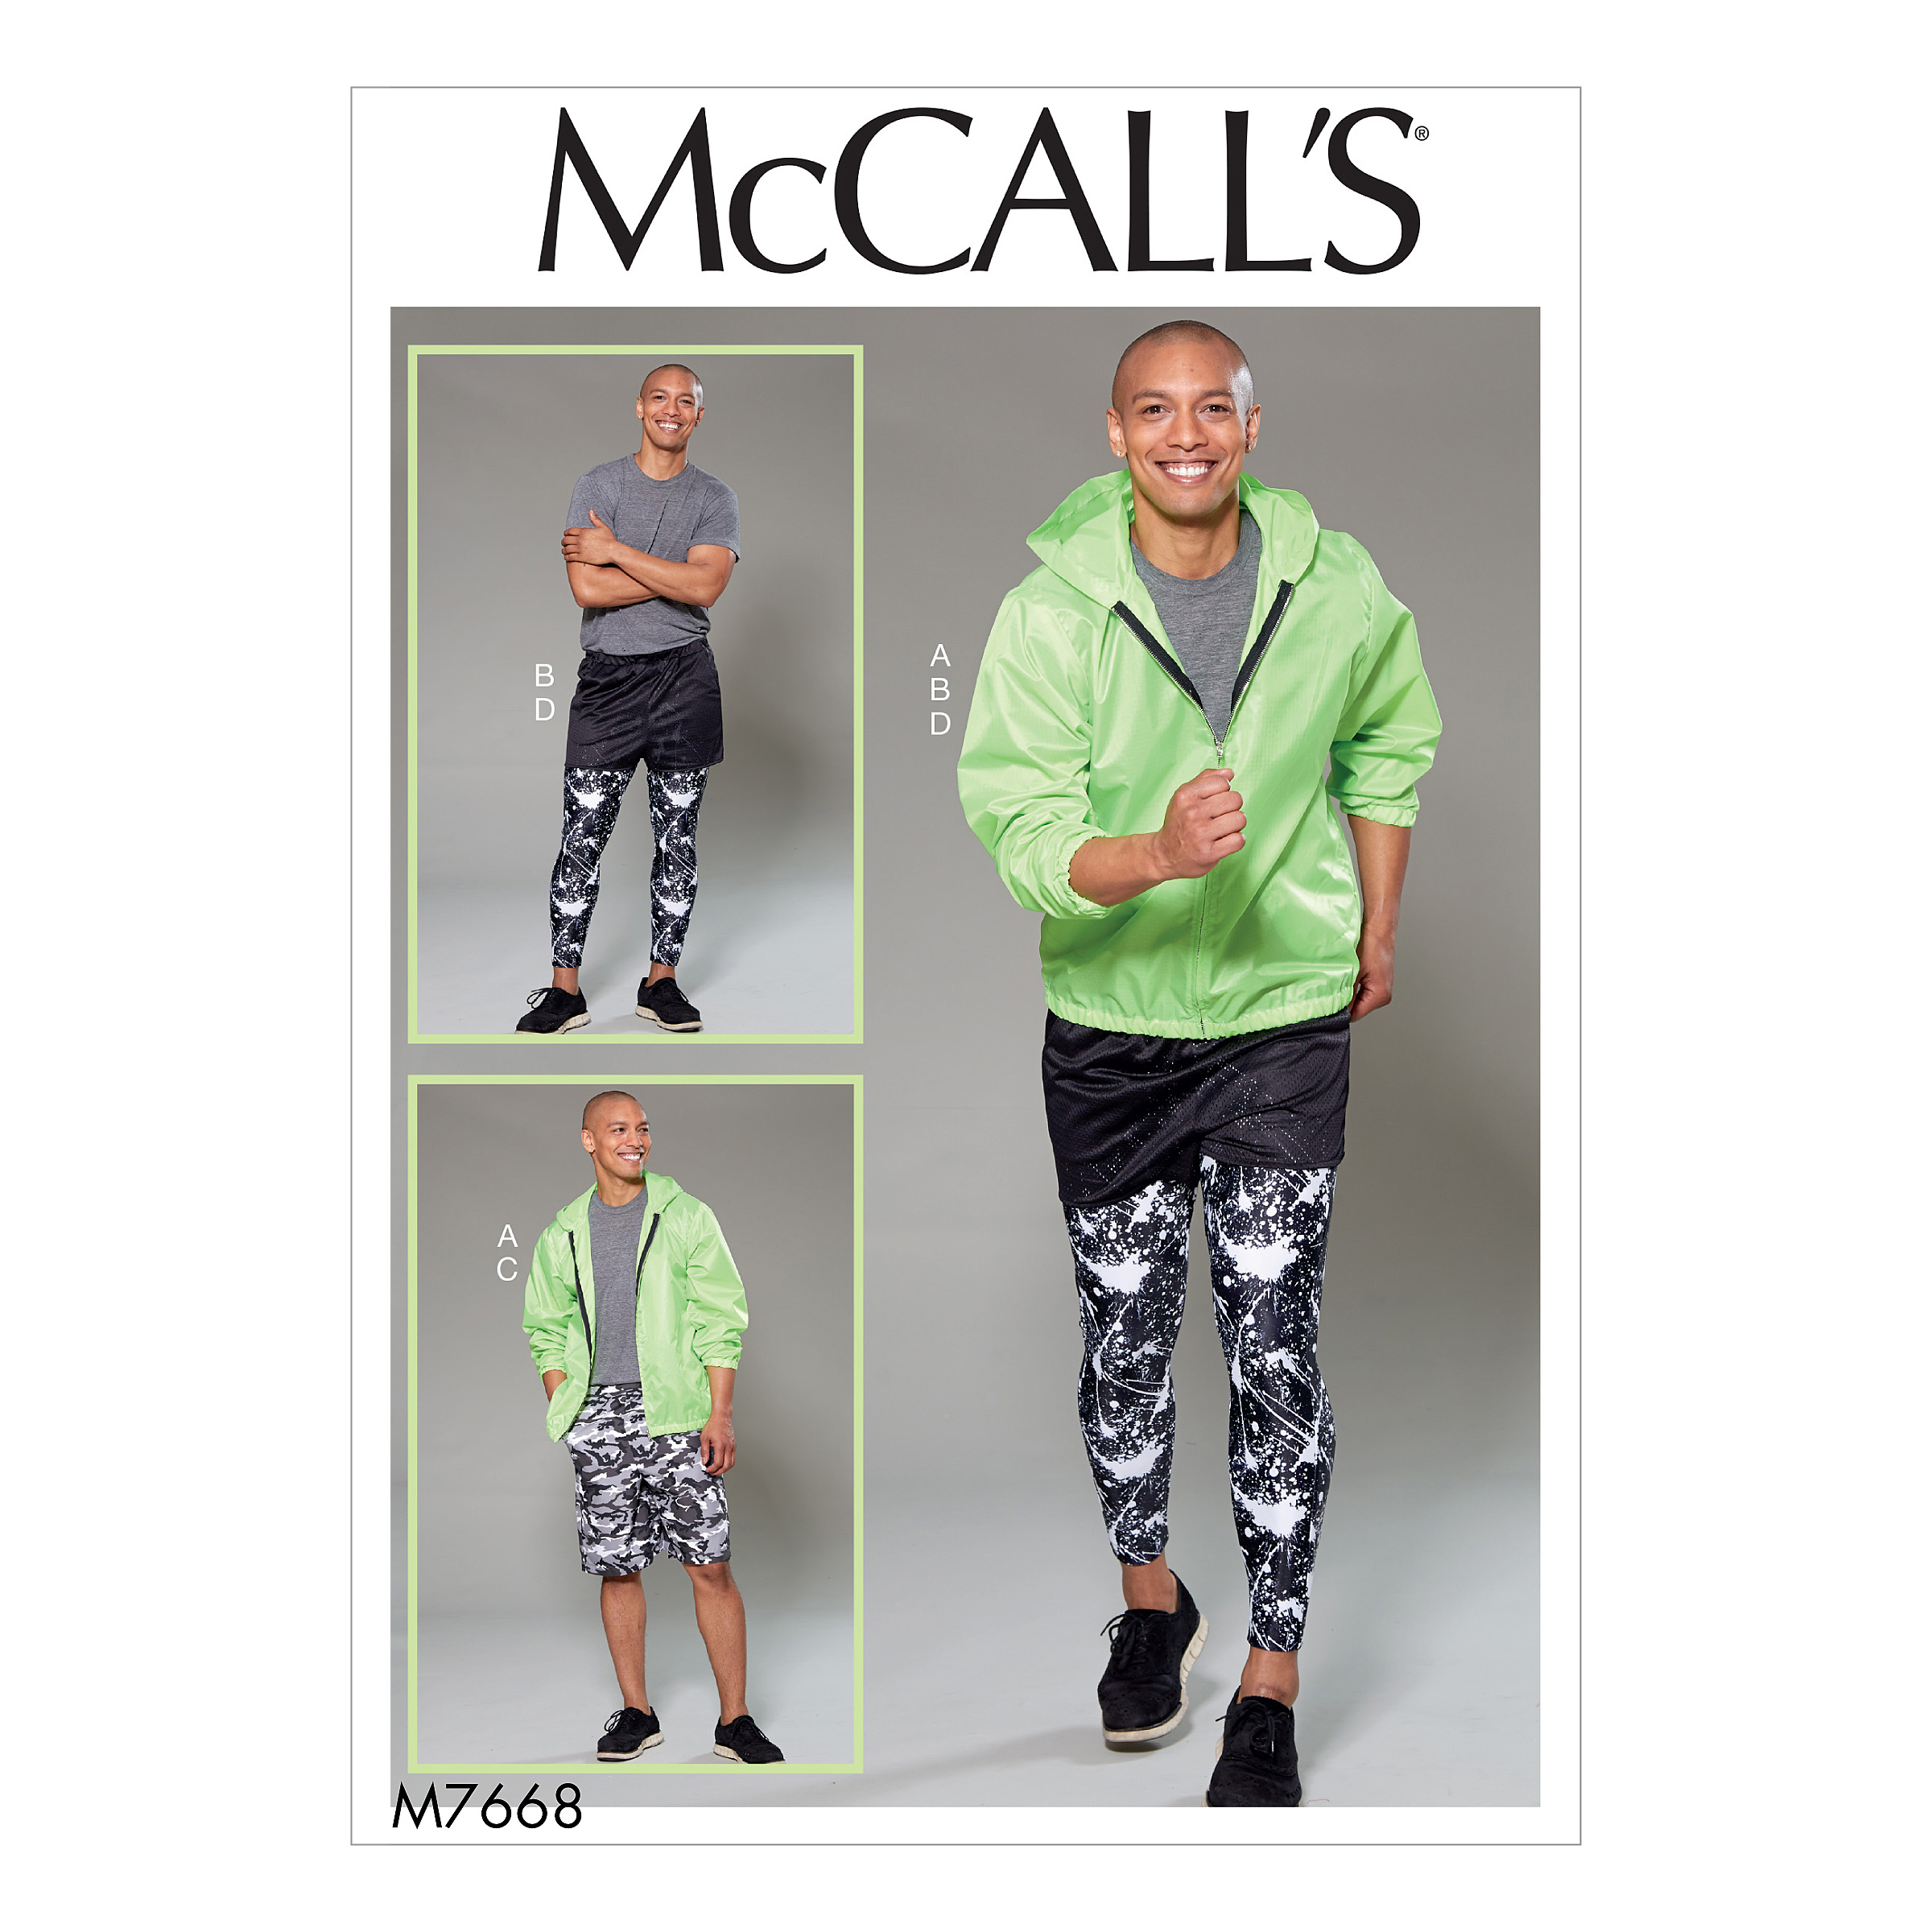 Mccalls 7668 mens hooded jacket shorts and leggings prevnext jeuxipadfo Image collections